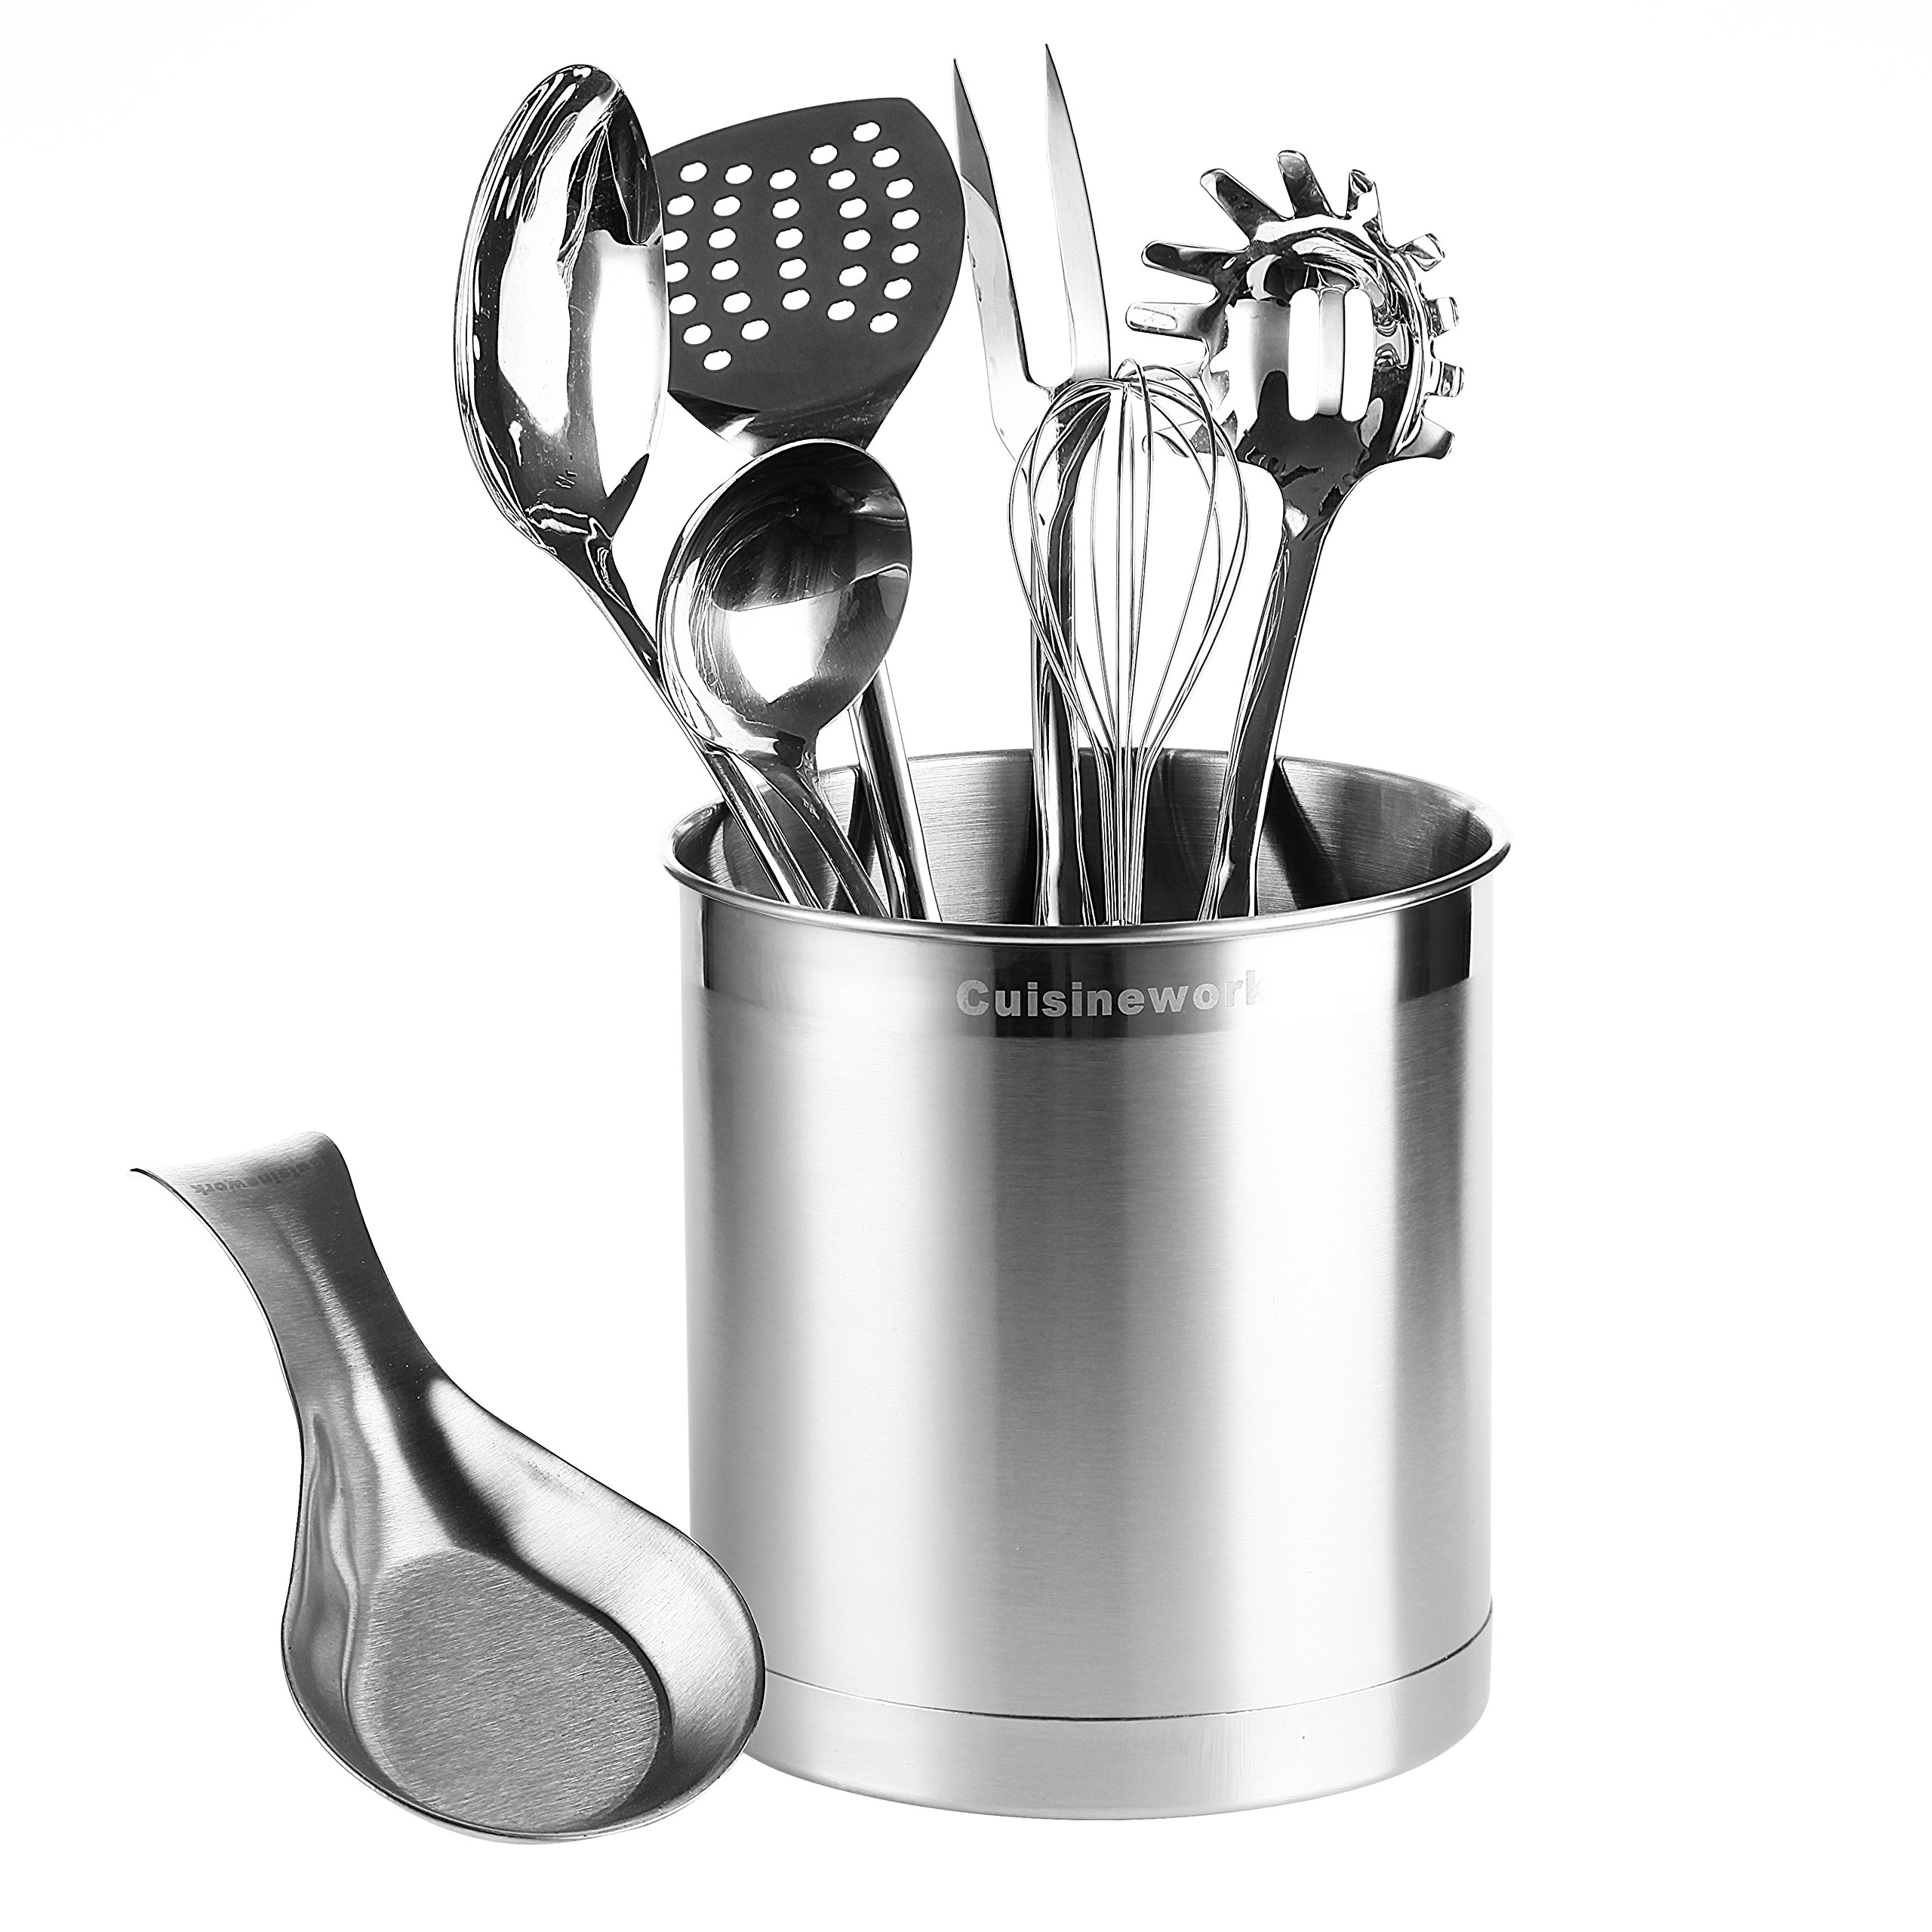 Kitchen Helper Bundles - Jumbo Stainless Steel Huge Capacity Utensil Holder with Weighted Based and Spoon Rest by Cuisinework